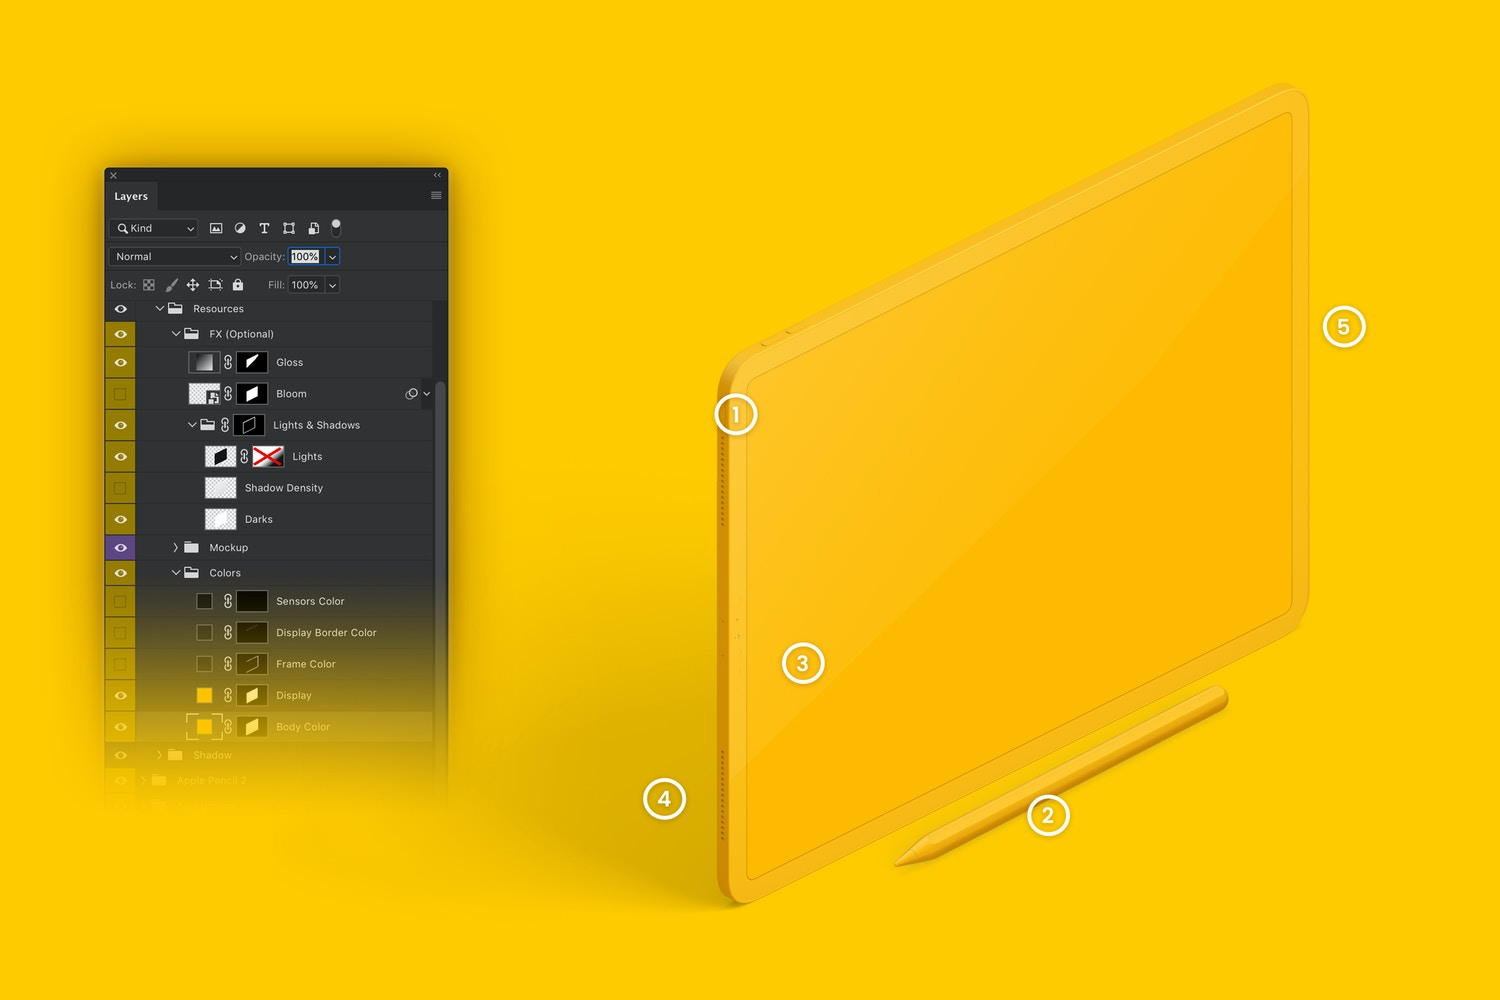 Clay iPad Pro 12.9 Mockup, Isometric Right View 03 (6) by Original Mockups on Original Mockups